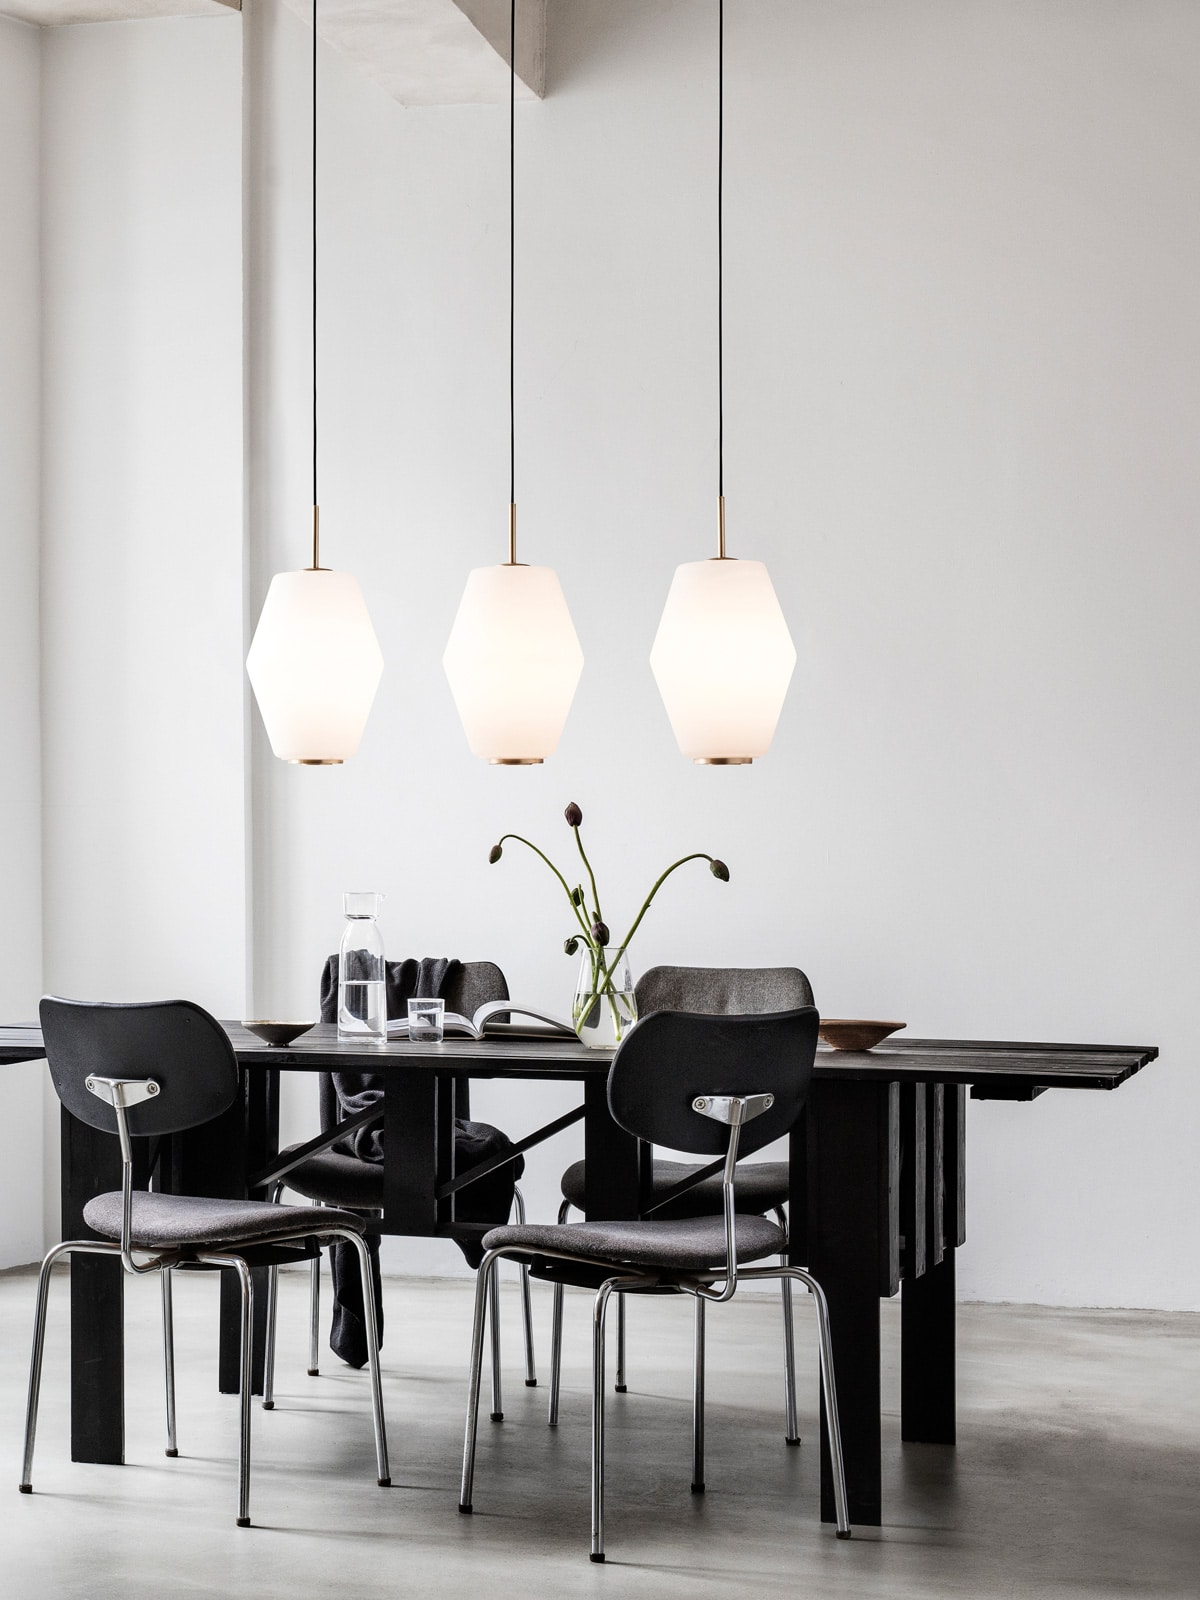 Birger Dahl Pendelleuchte Dahl Northern Lighting bei DesignOrt Berlin